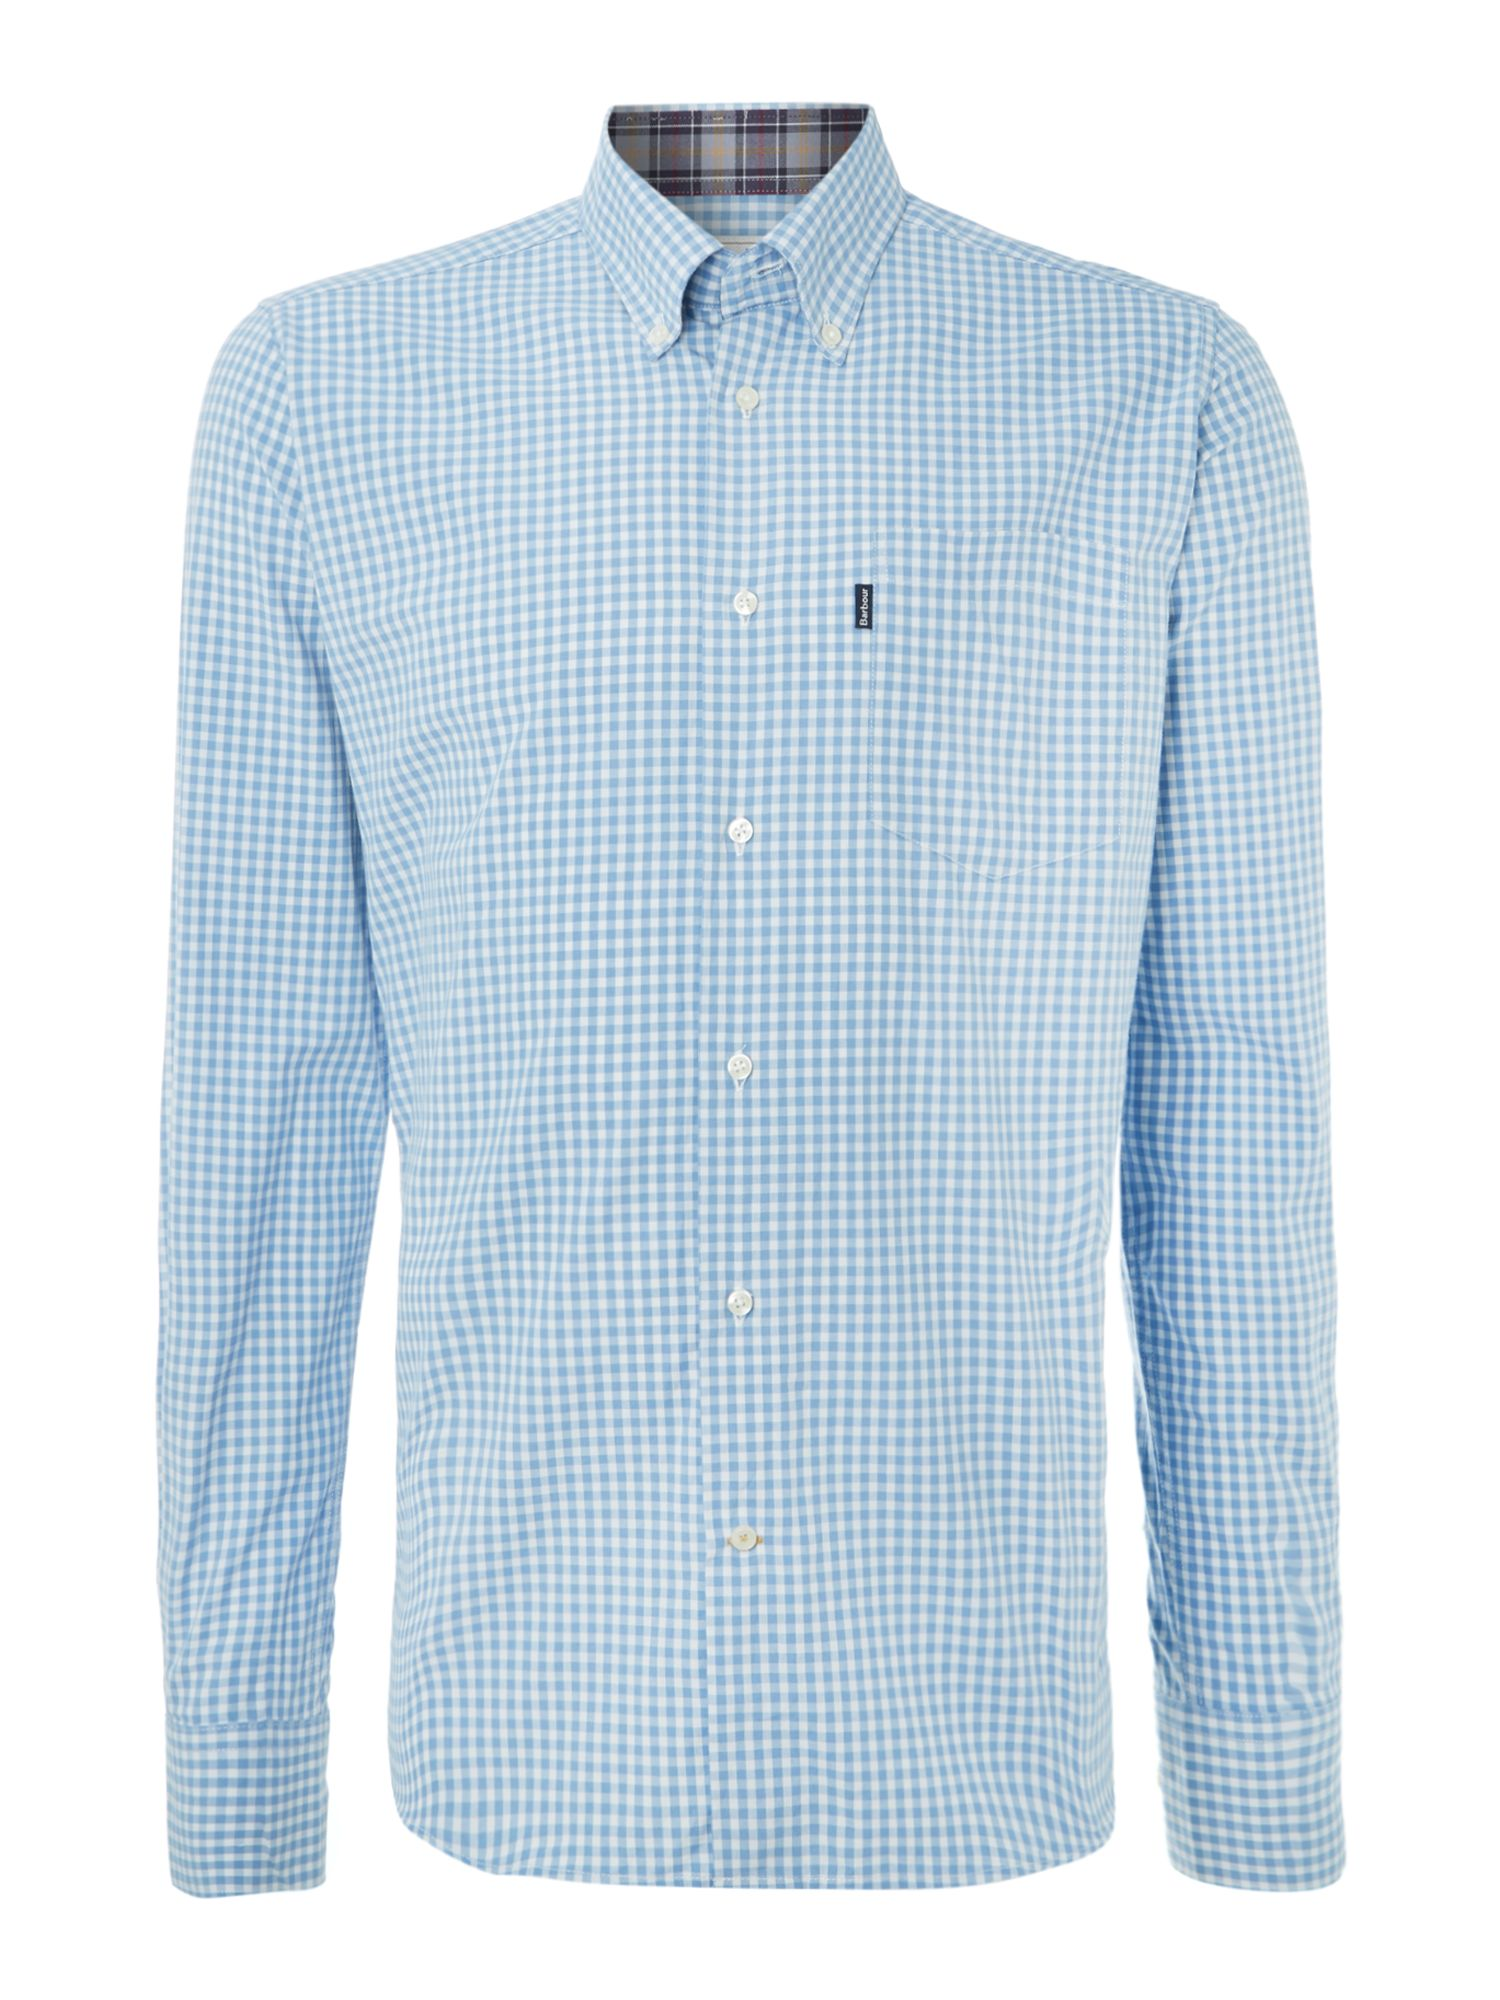 100% Cotton country gingham long sleeve shirt